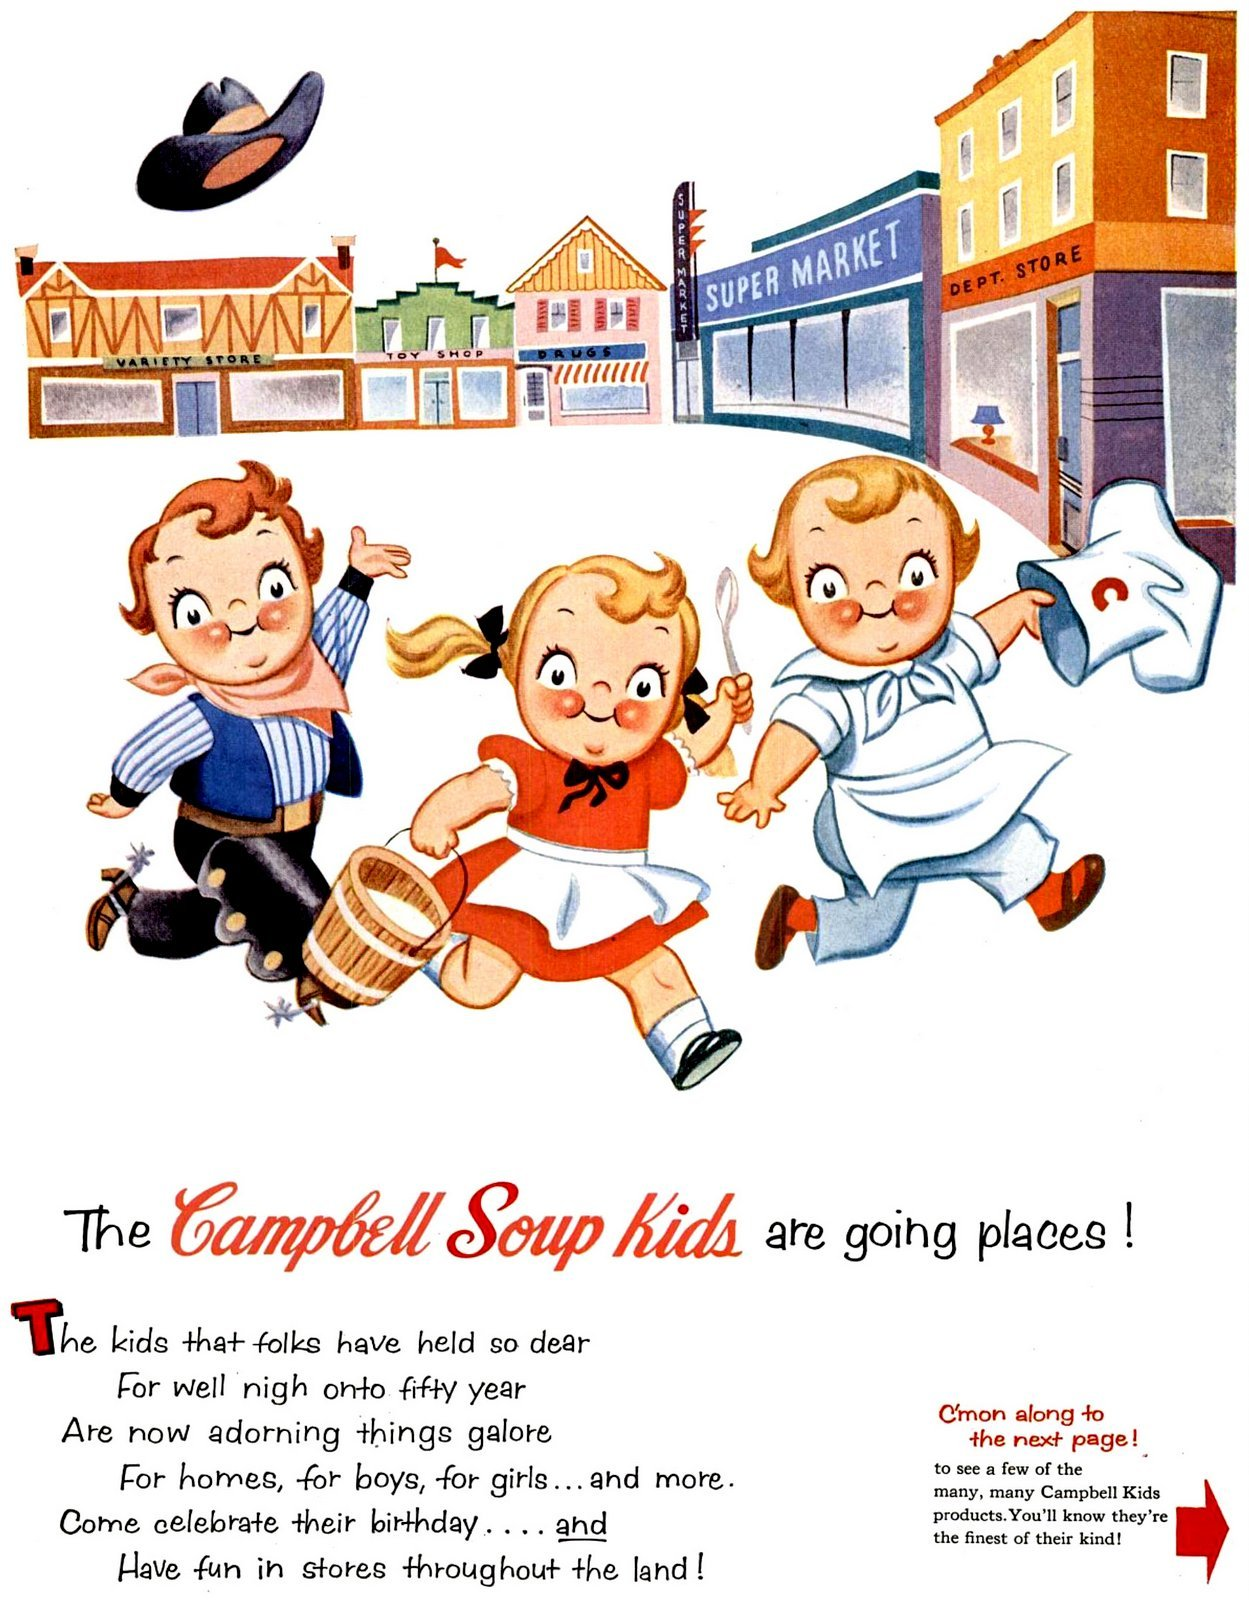 Vintage Campbell's Soup Kids going places - 1950s